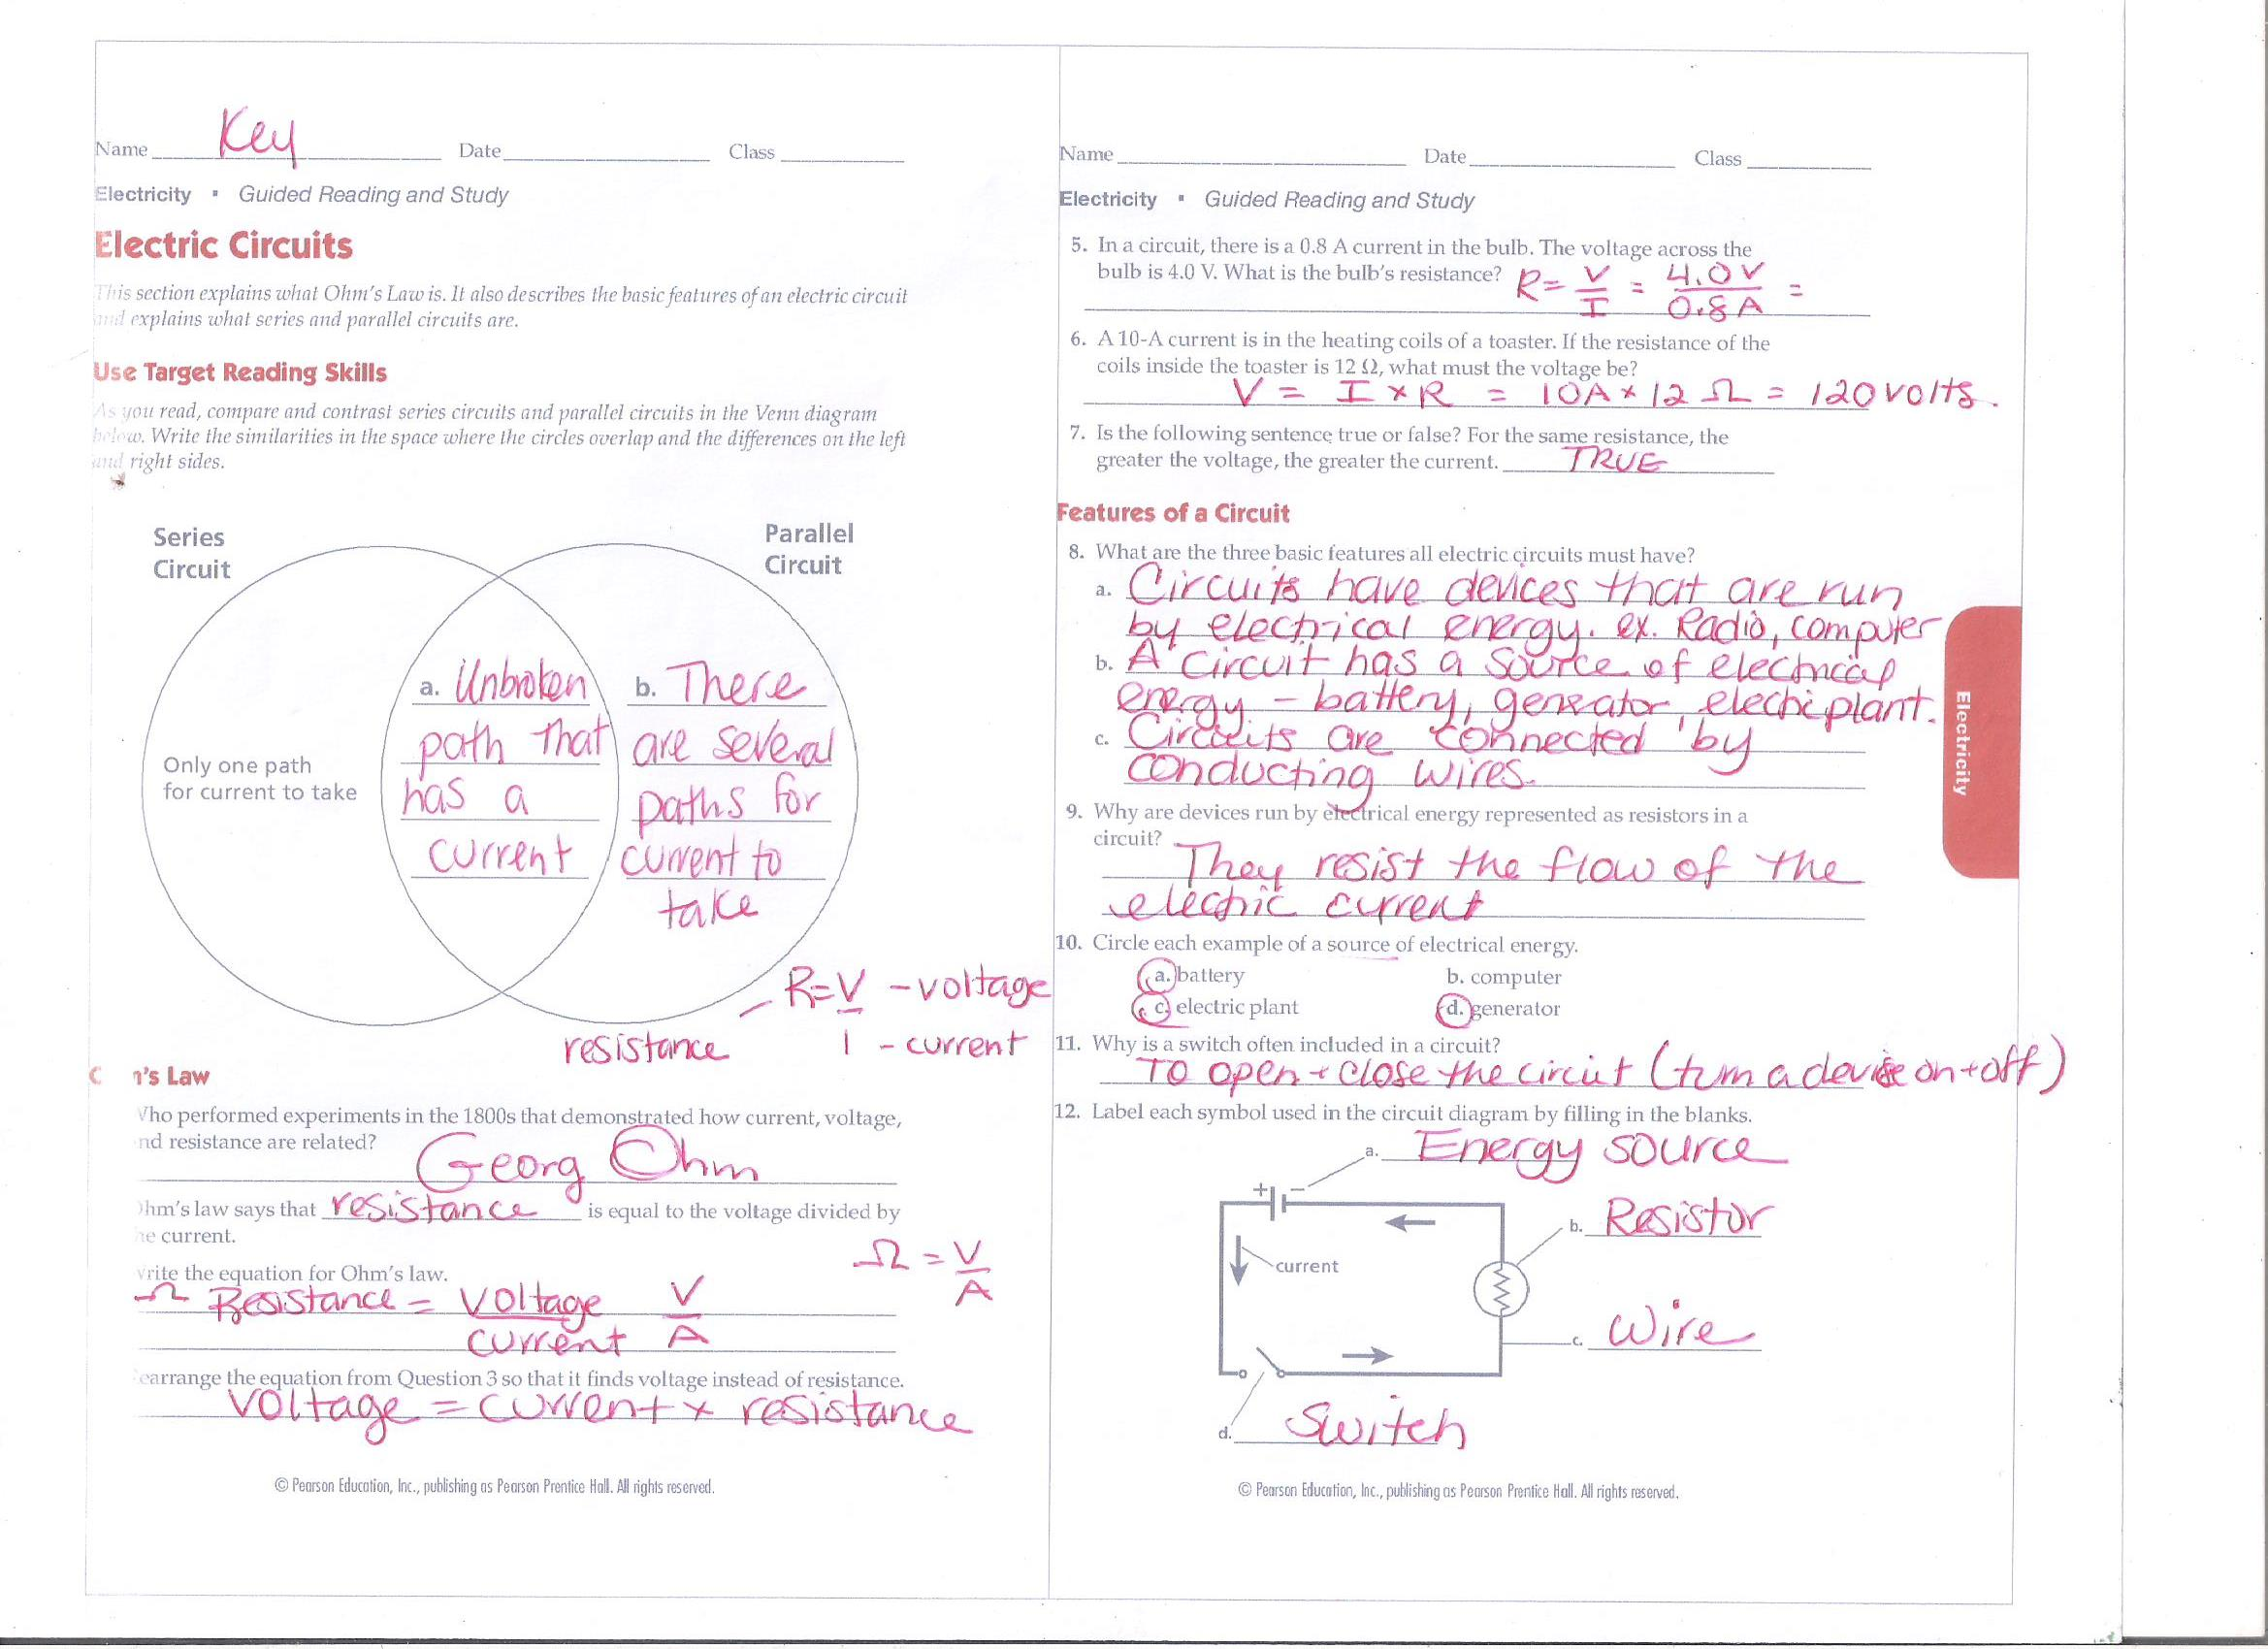 Physics Ms Pati At Green Oaks Electriccircuit2jpg Guided Reading Electricity Electric Circuits Answer Key 1